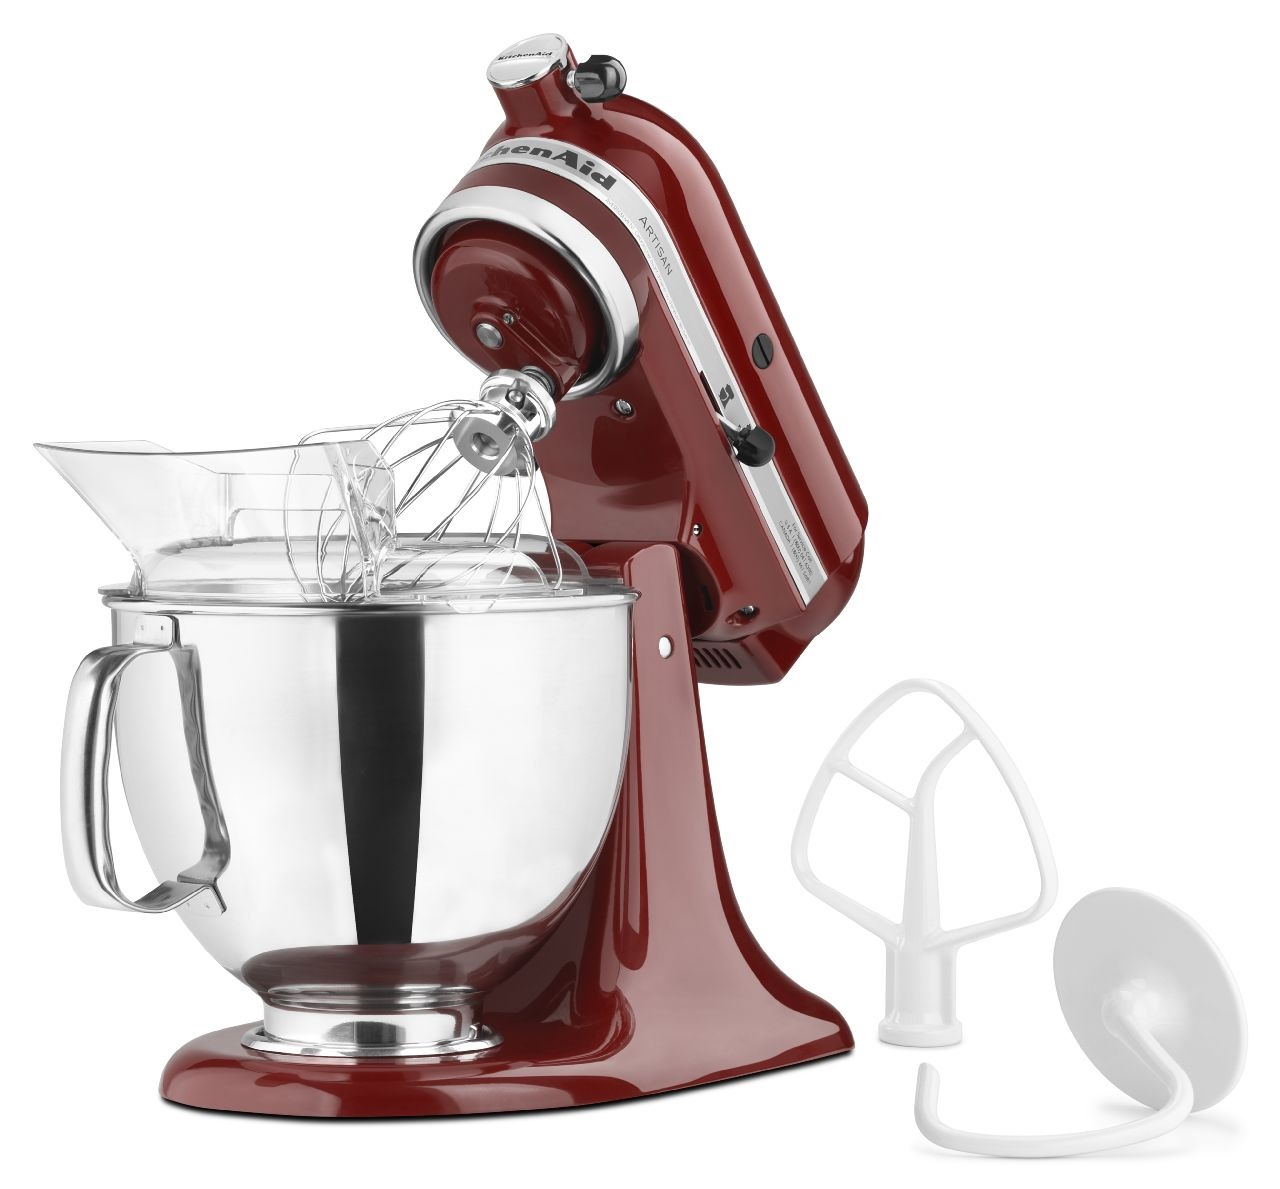 KitchenAid-Refurbished-Artisan-Series-5-Quart-Tilt-Head-Stand-Mixer-RRK150 thumbnail 56